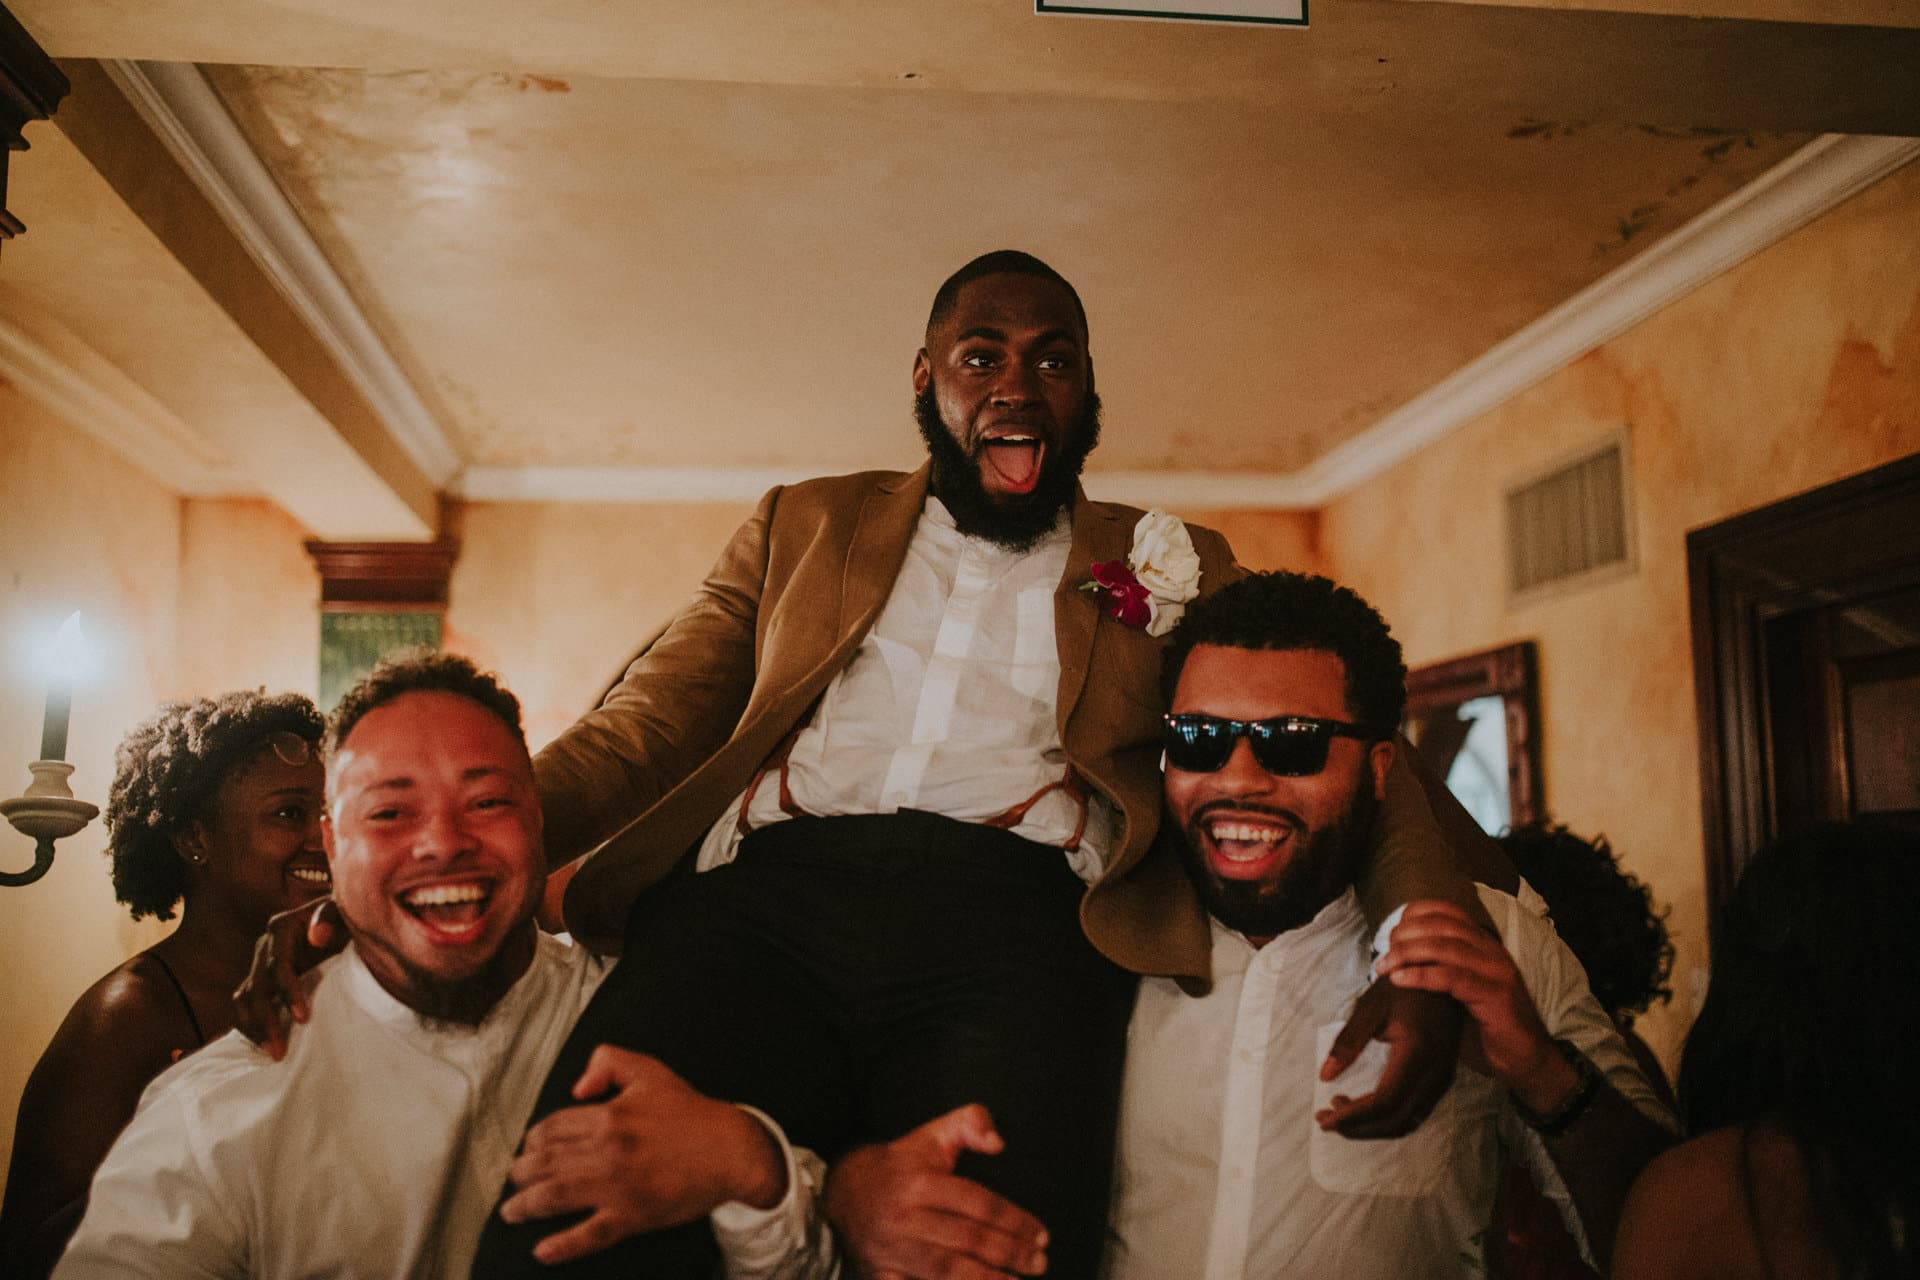 Two groomsmen are holding up the groom.